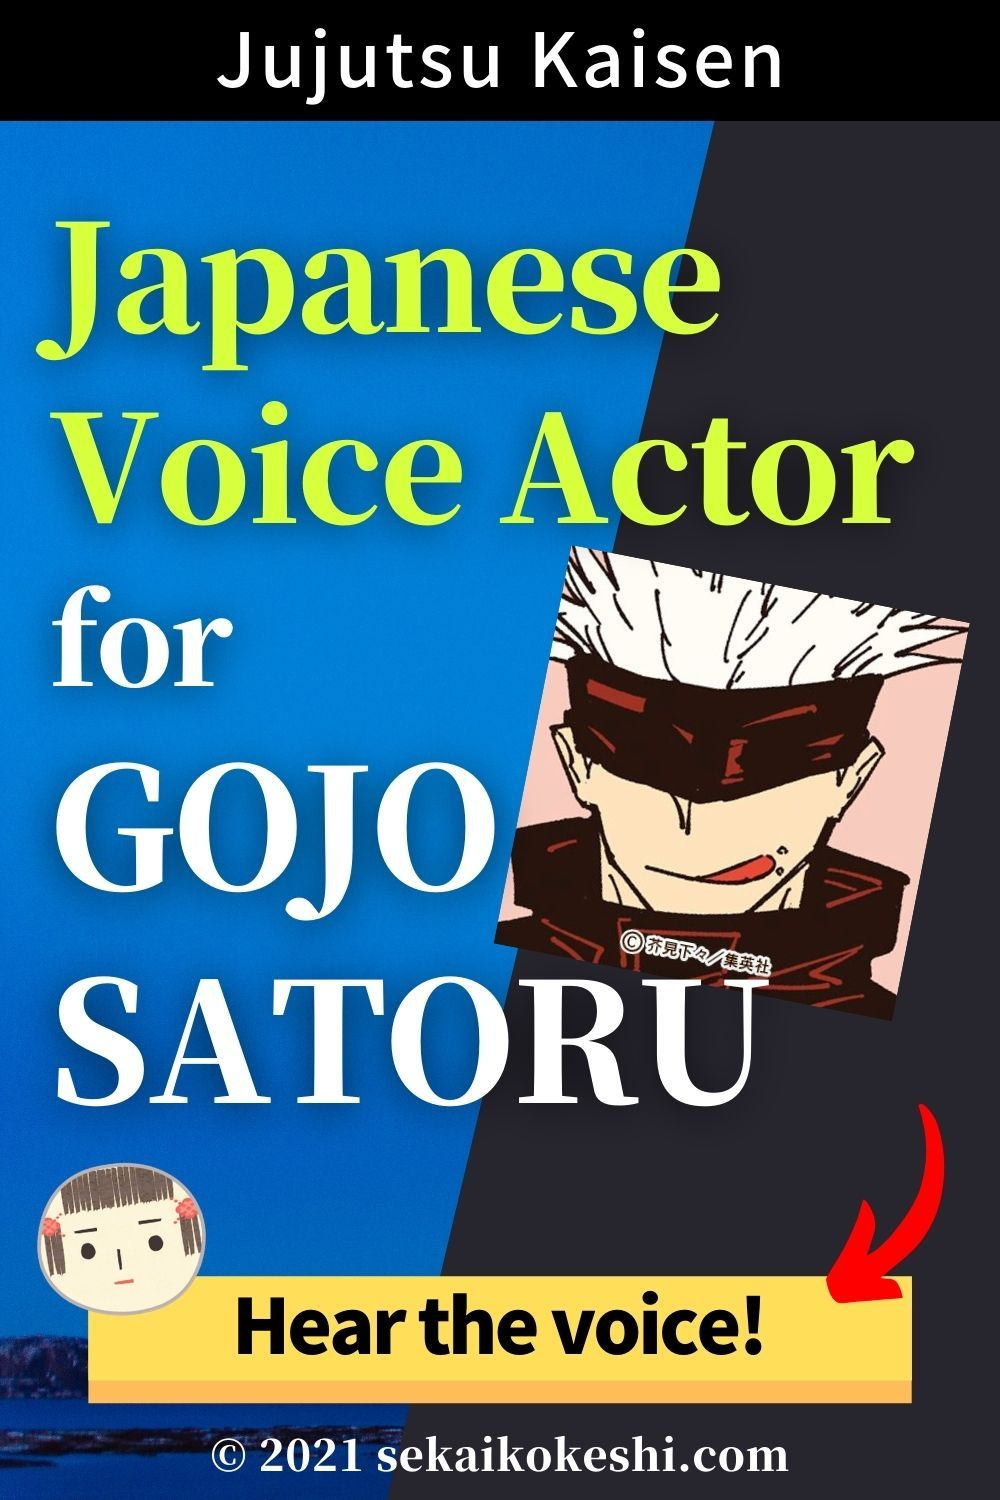 Japanese Voice Actor For Gojo Satoru Jujutsu Kaisen Anime Click Here Hear His Voice In 2021 Voice Actor The Voice Fun Facts